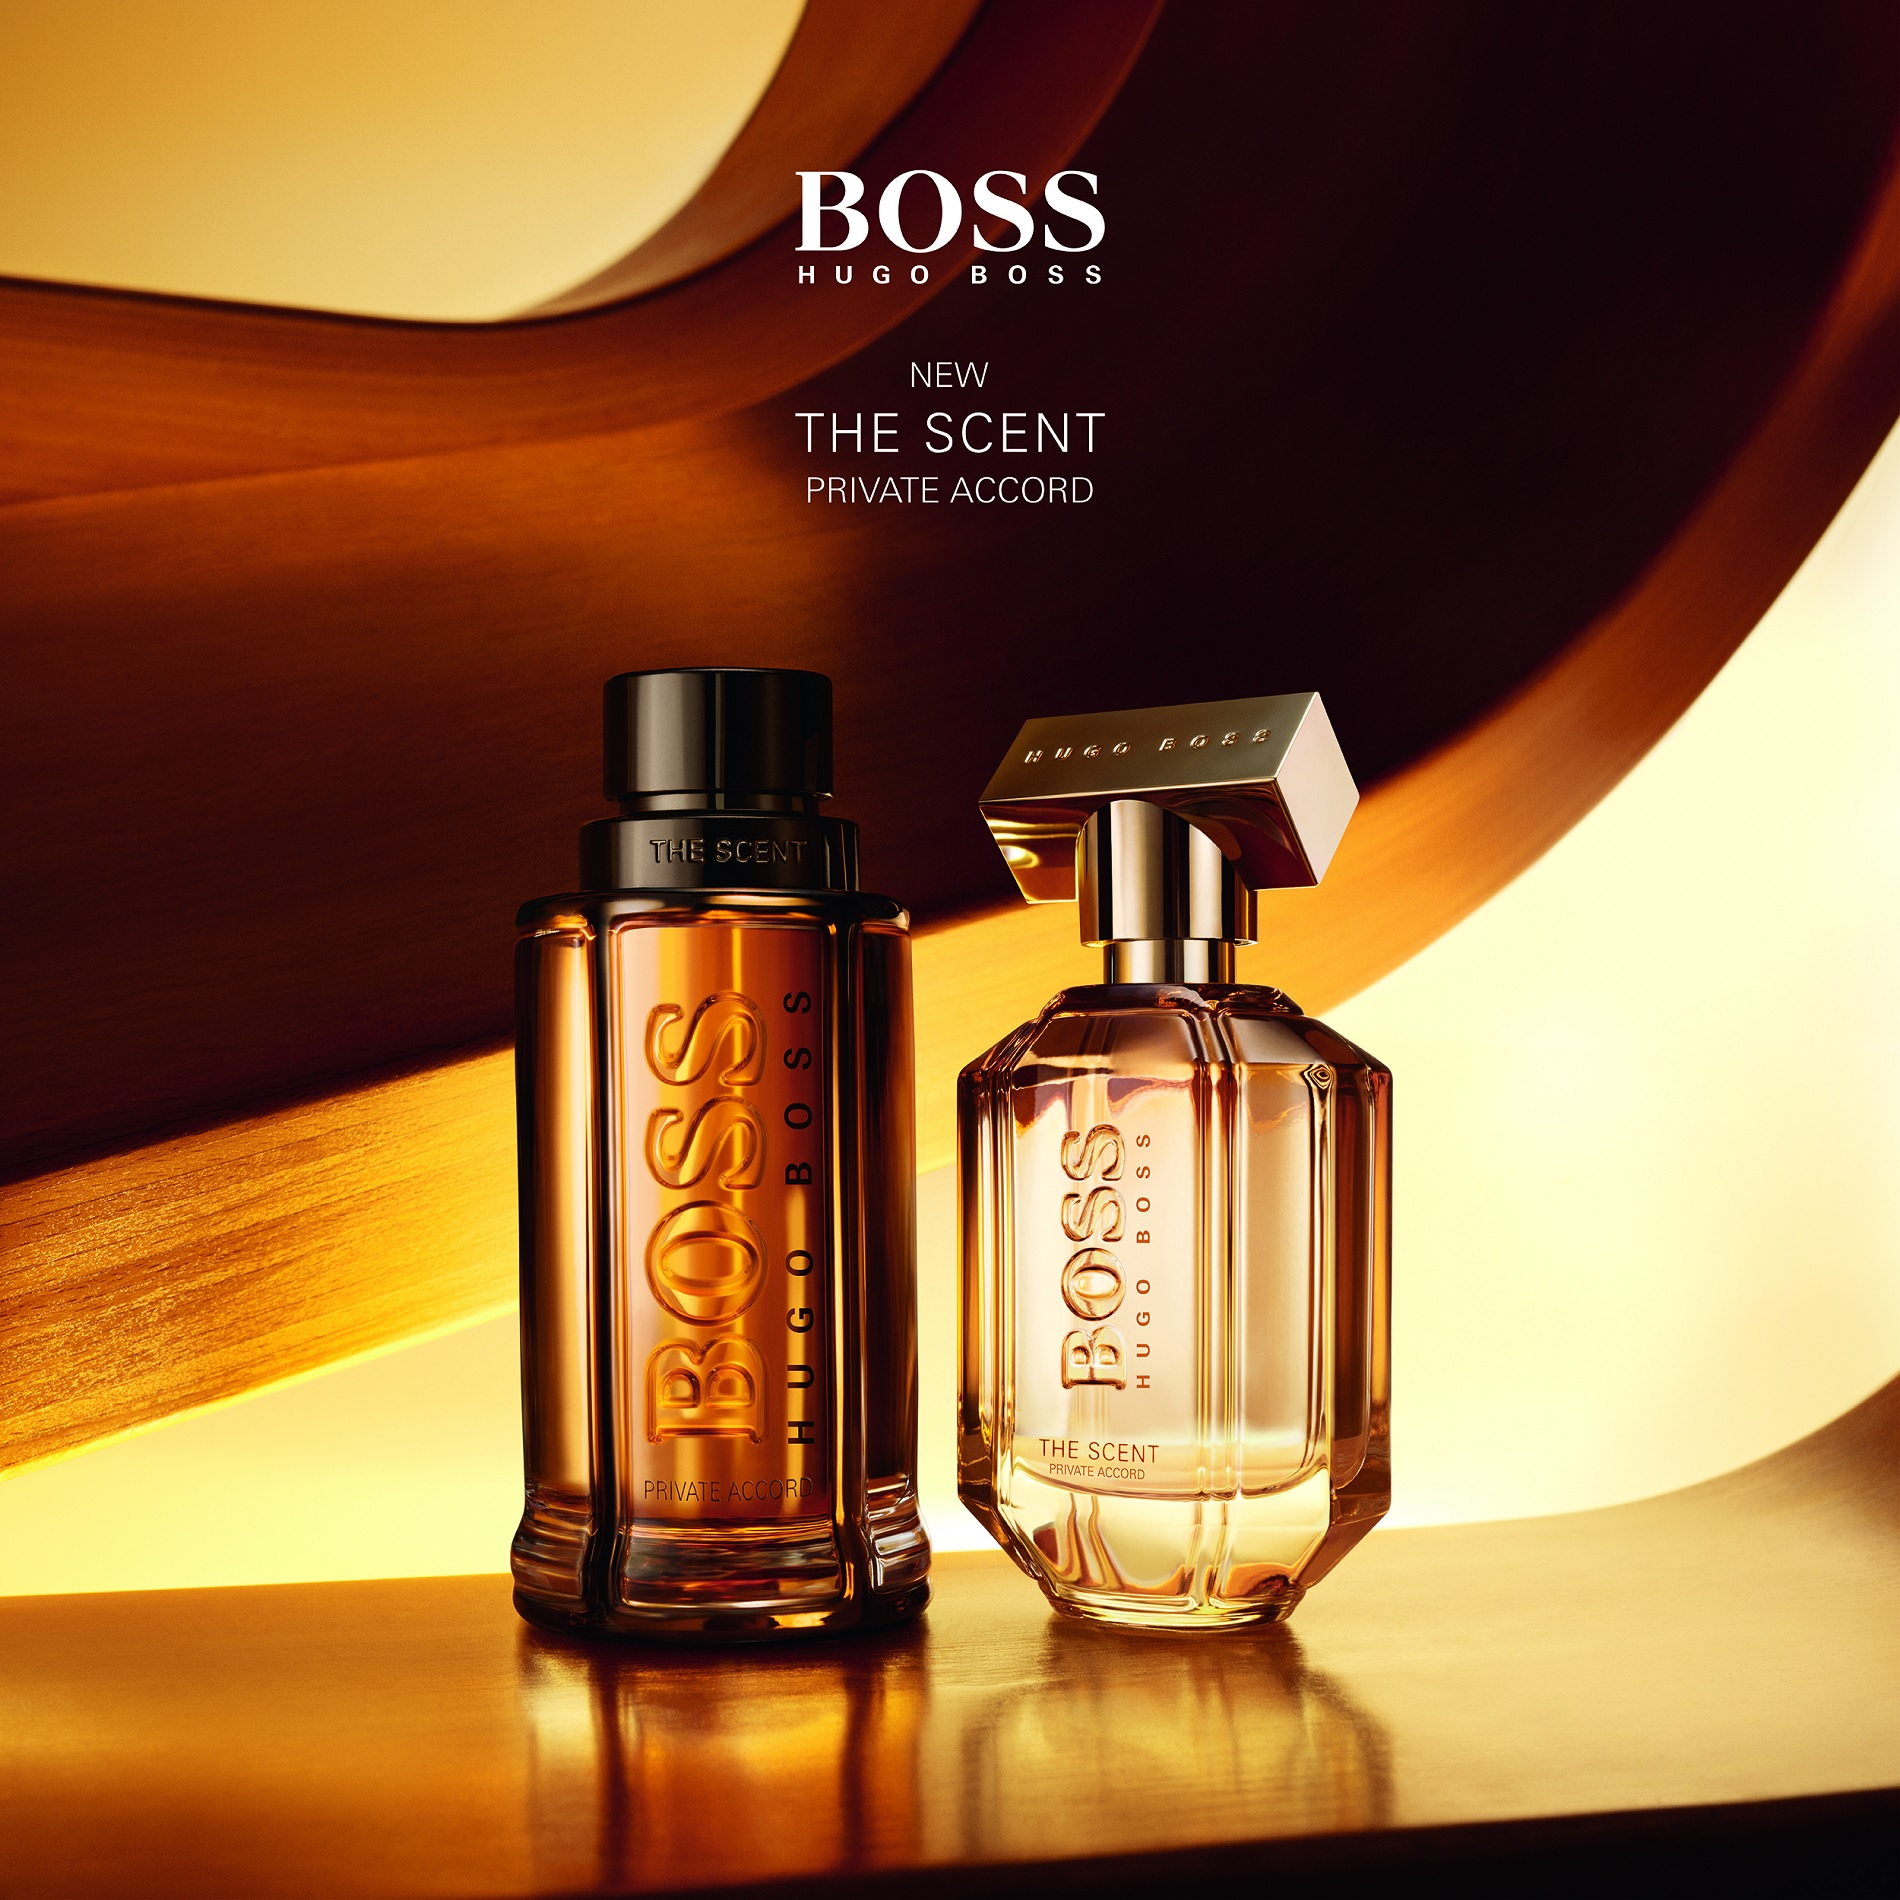 boss the scent private accord for her hugo boss perfume a new fragrance for women 2018